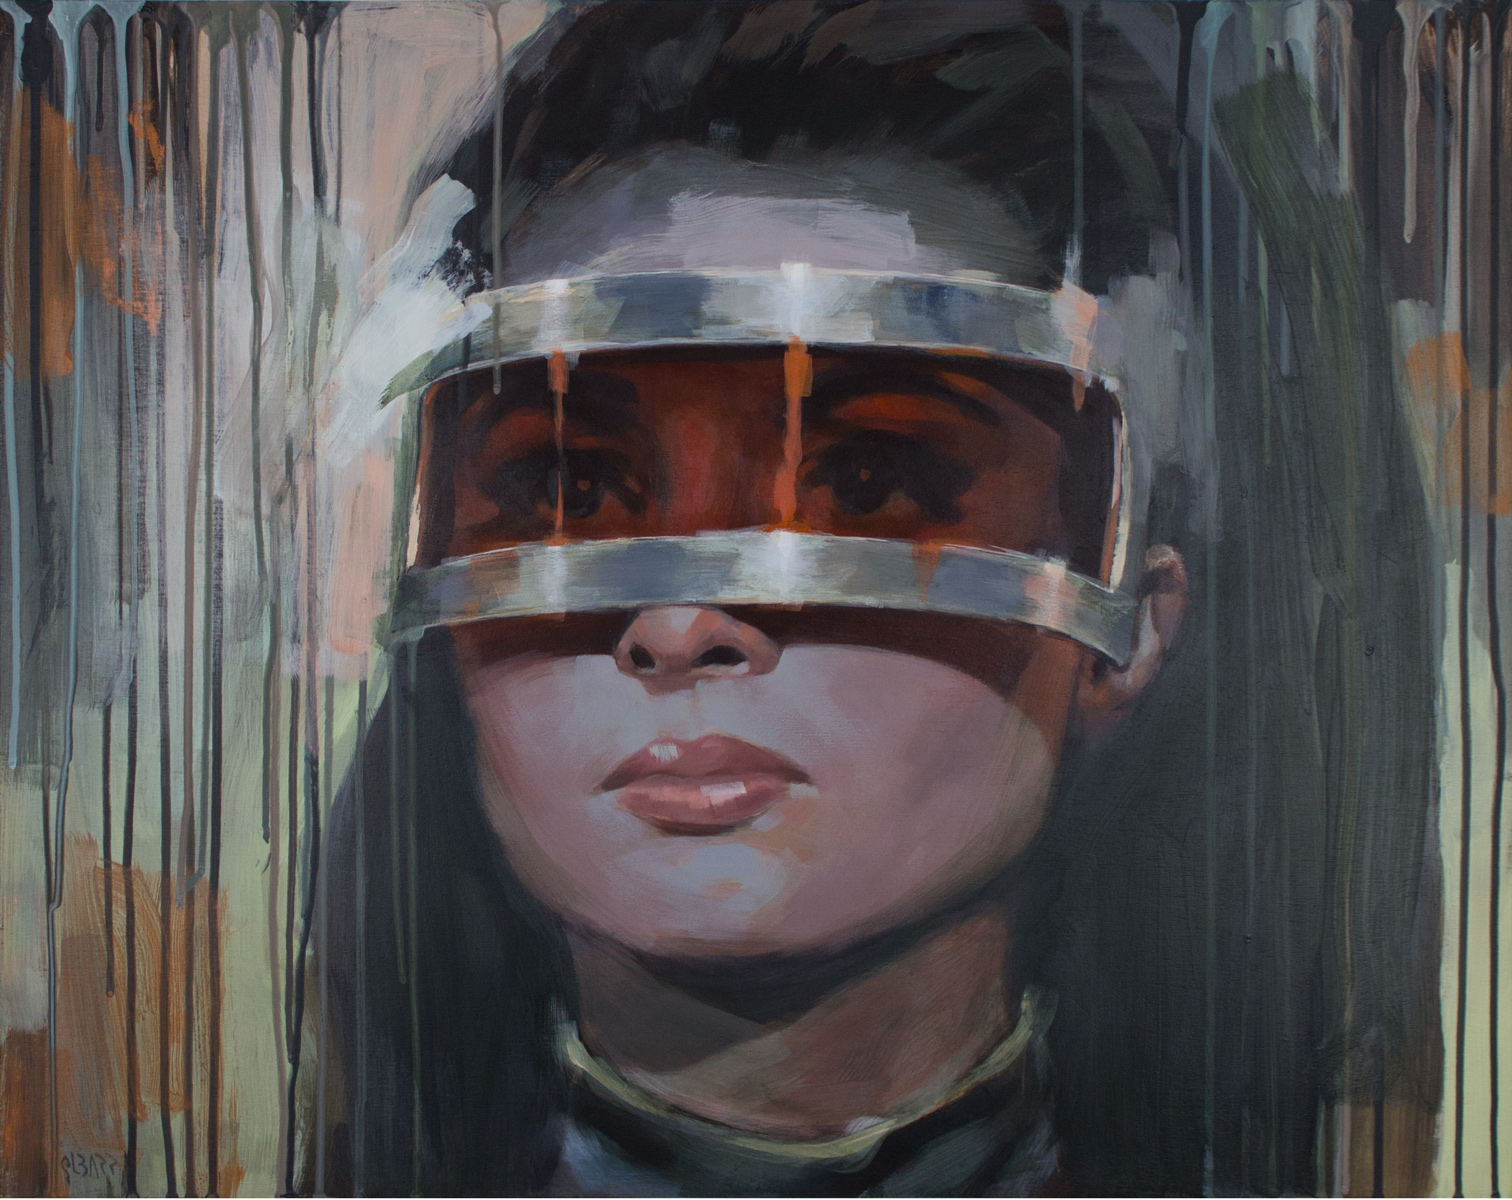 Glenn Barr Saturday's Child  Acrylic on Cradled Wood Panel   24 x 30 x 2 Inches  SOLD